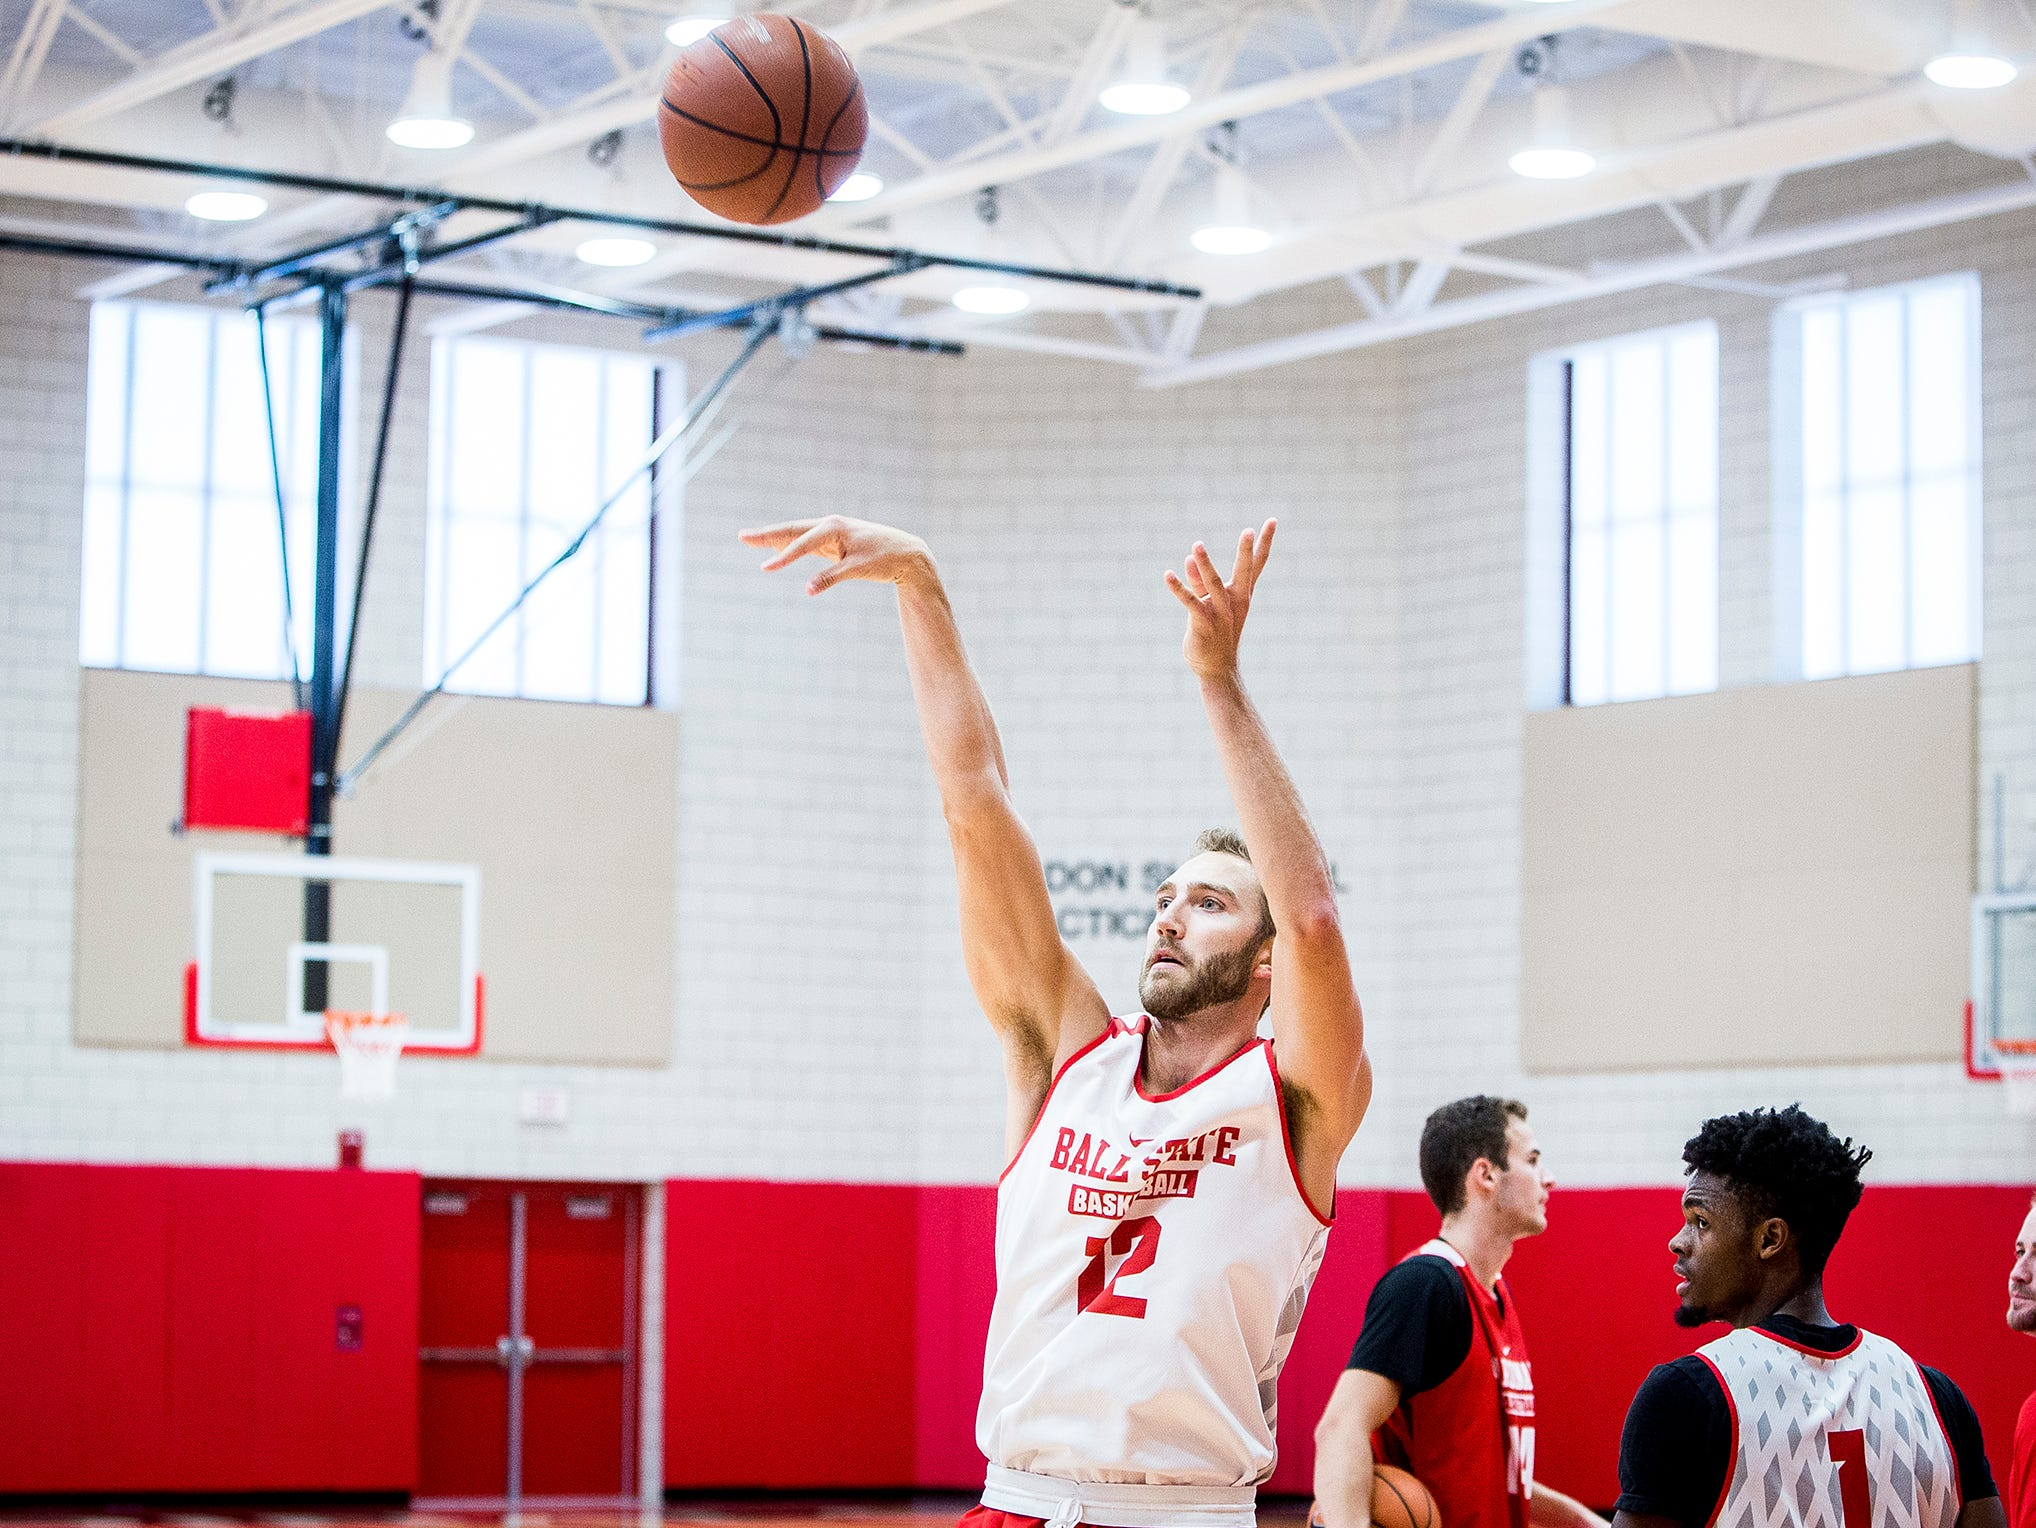 Ball State's Brachen Hazen takes a shot during the team's first open practice Tuesday, Sept. 25, 2018.